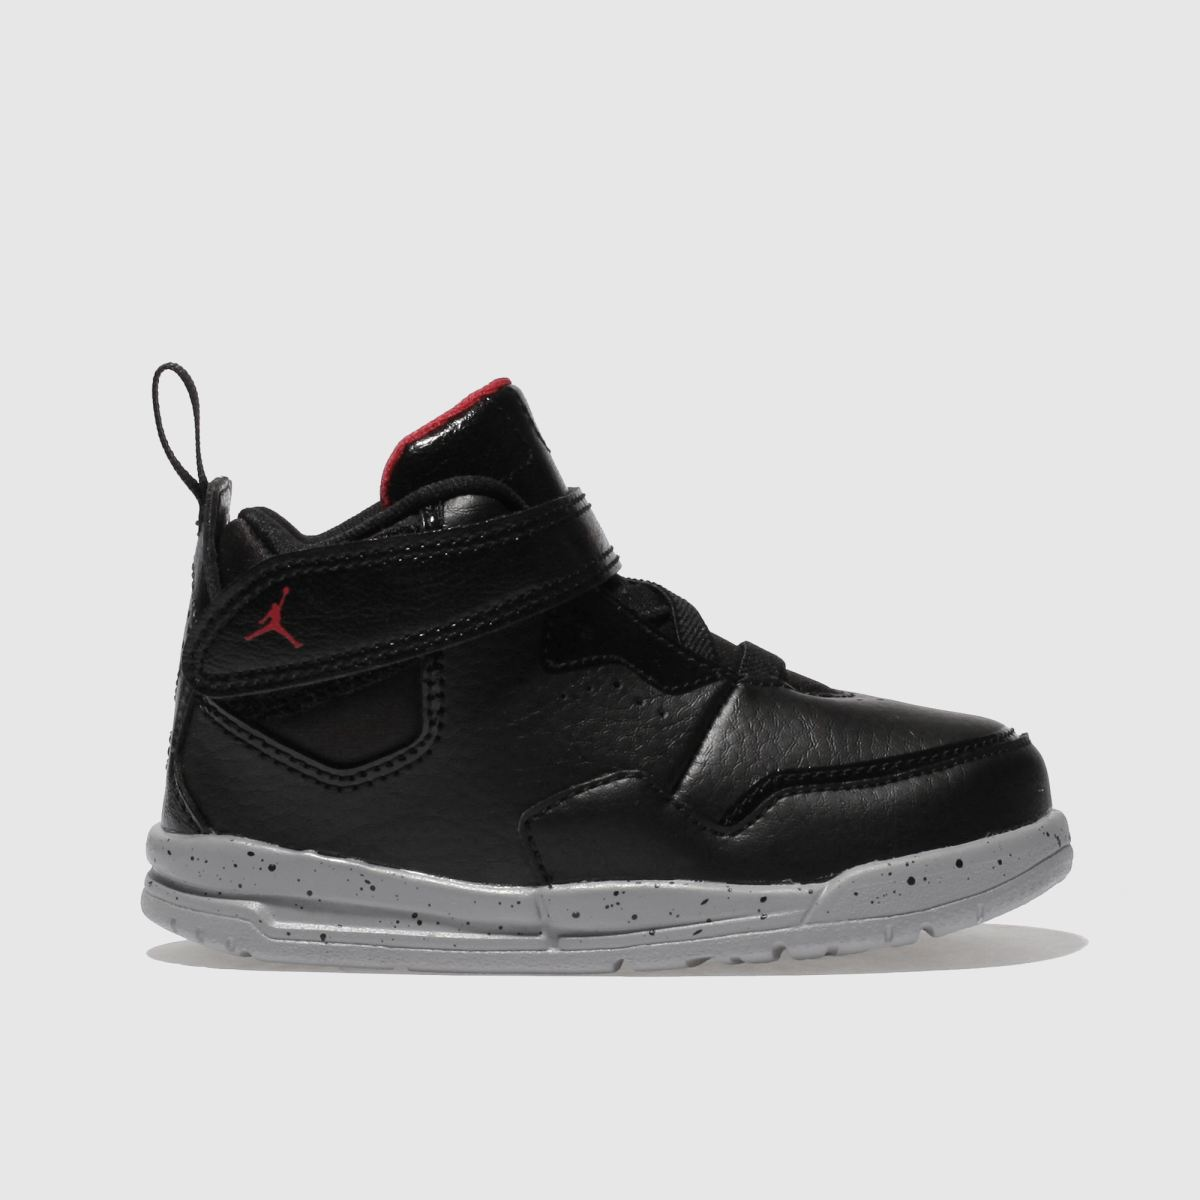 Nike Jordan Black & Red Courtside 23 Unisex Toddler Toddler